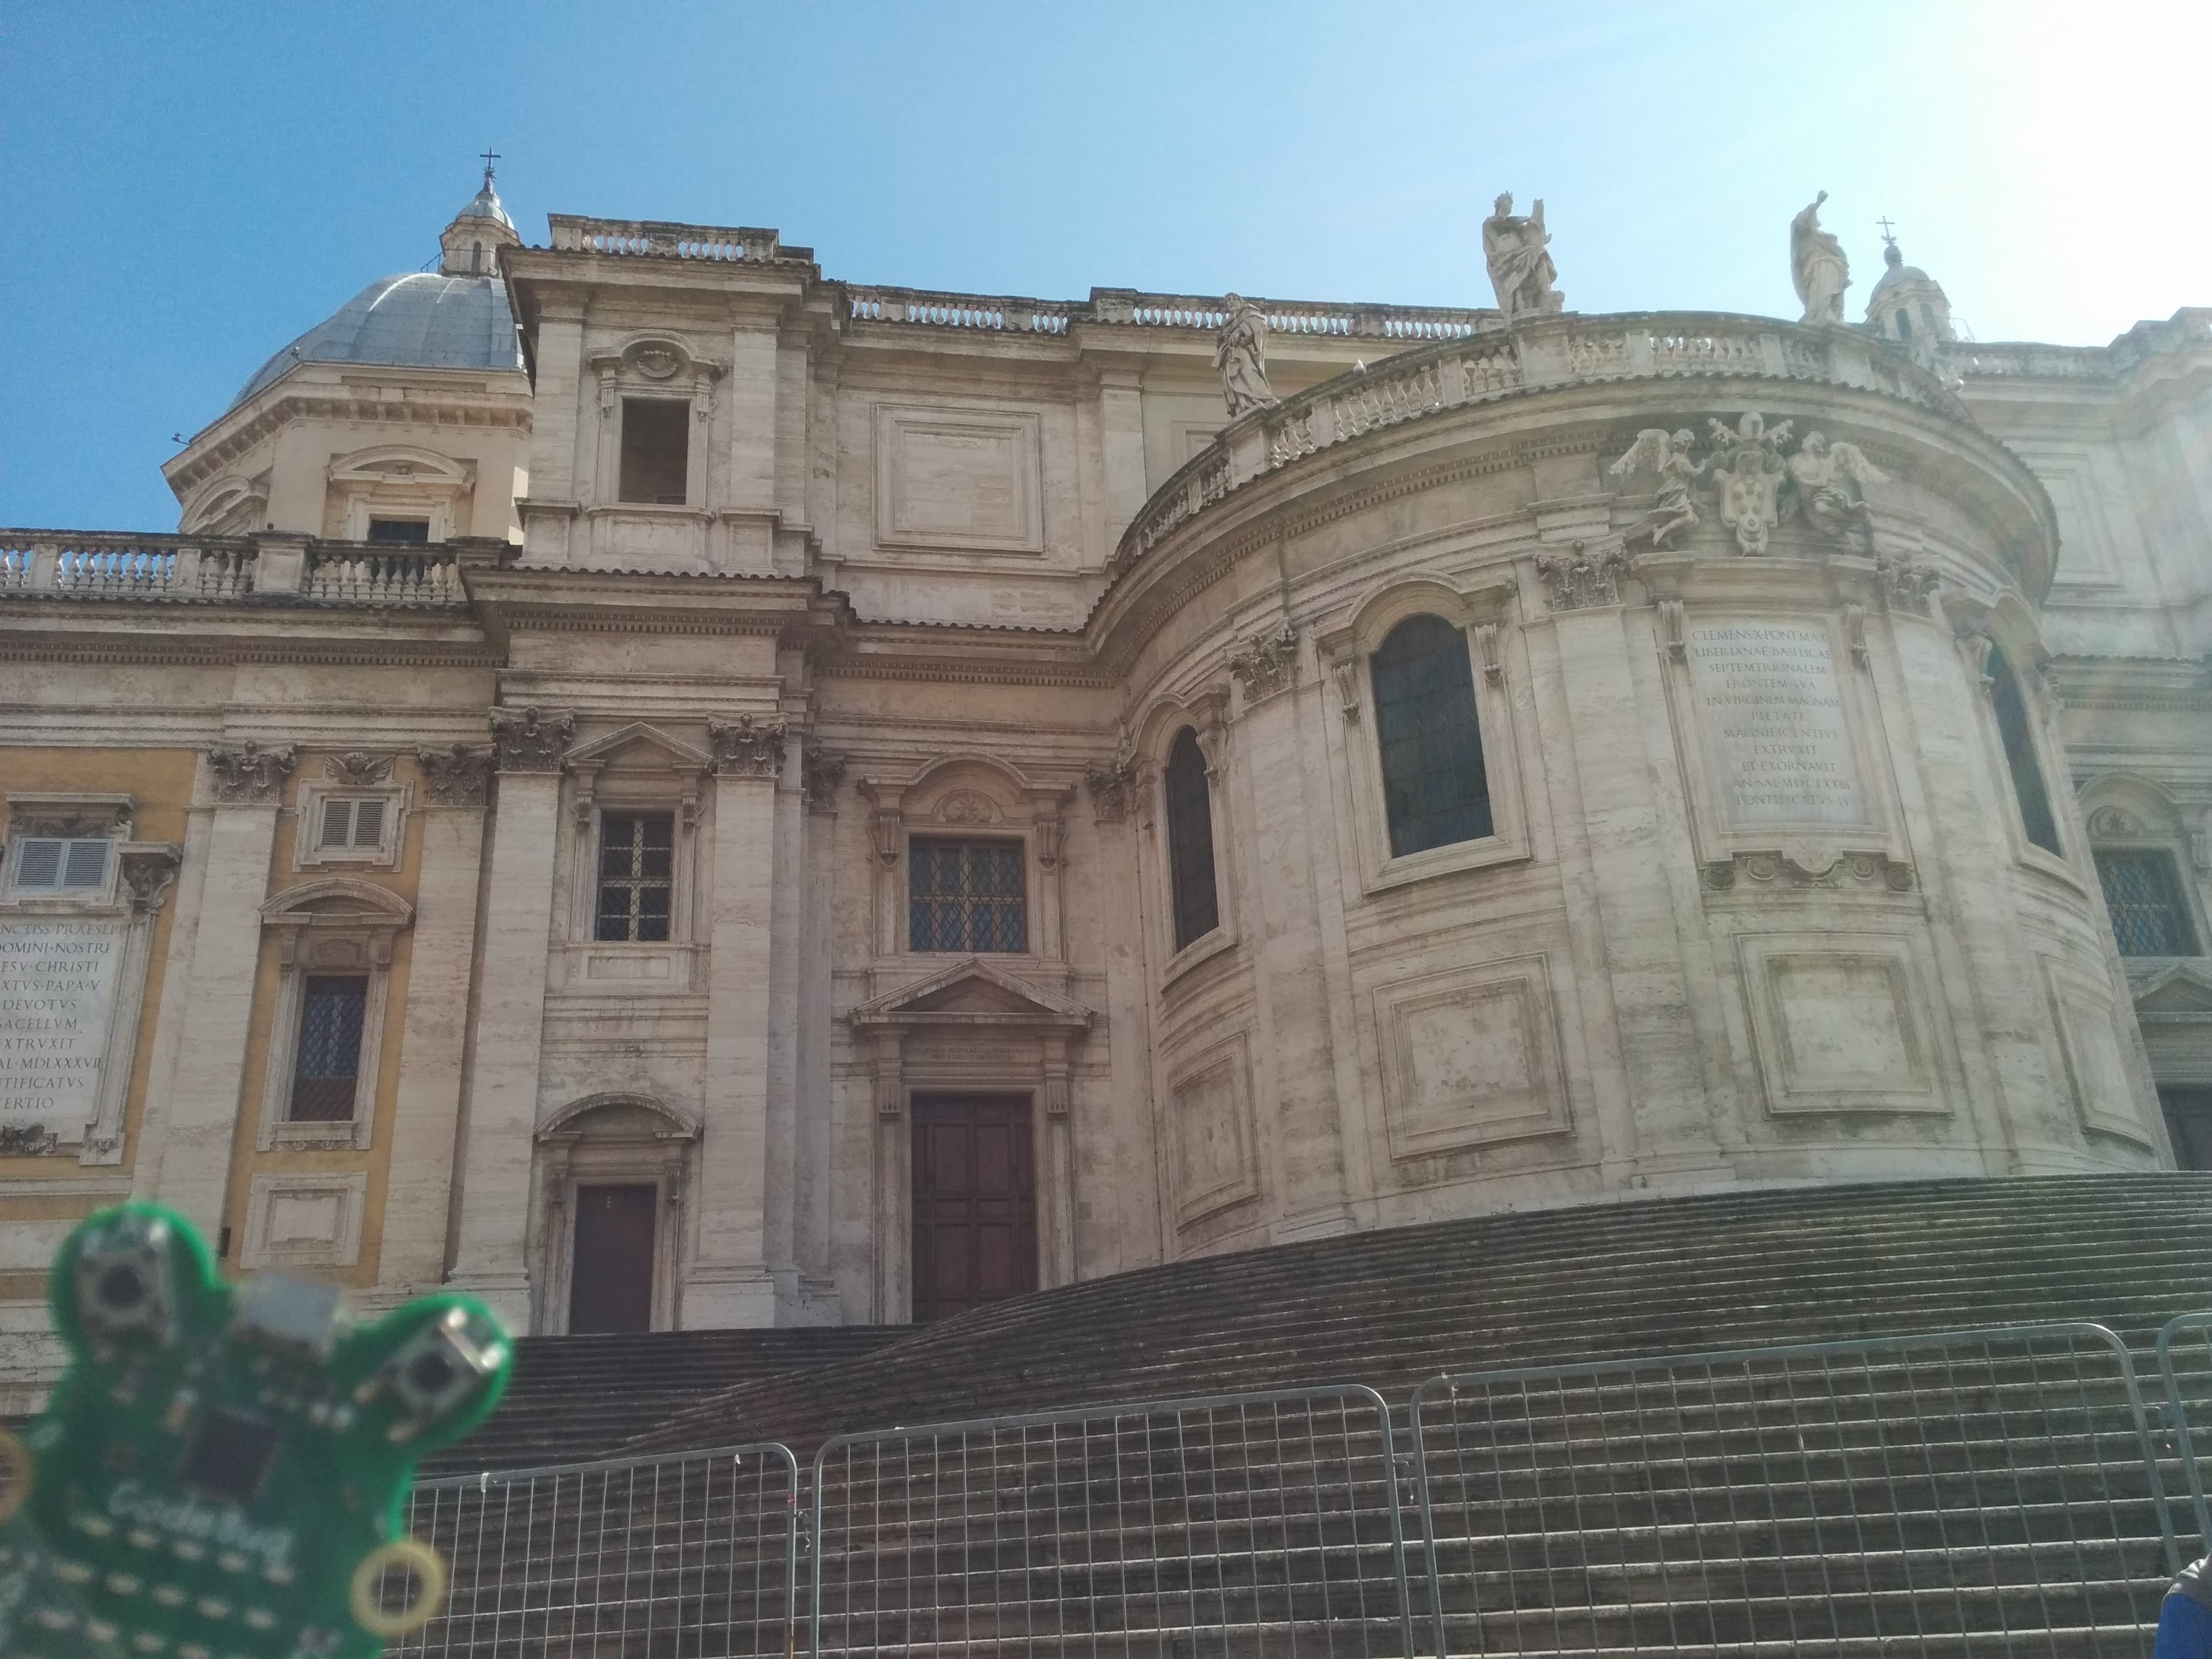 CodeBug sightseeing in Rome